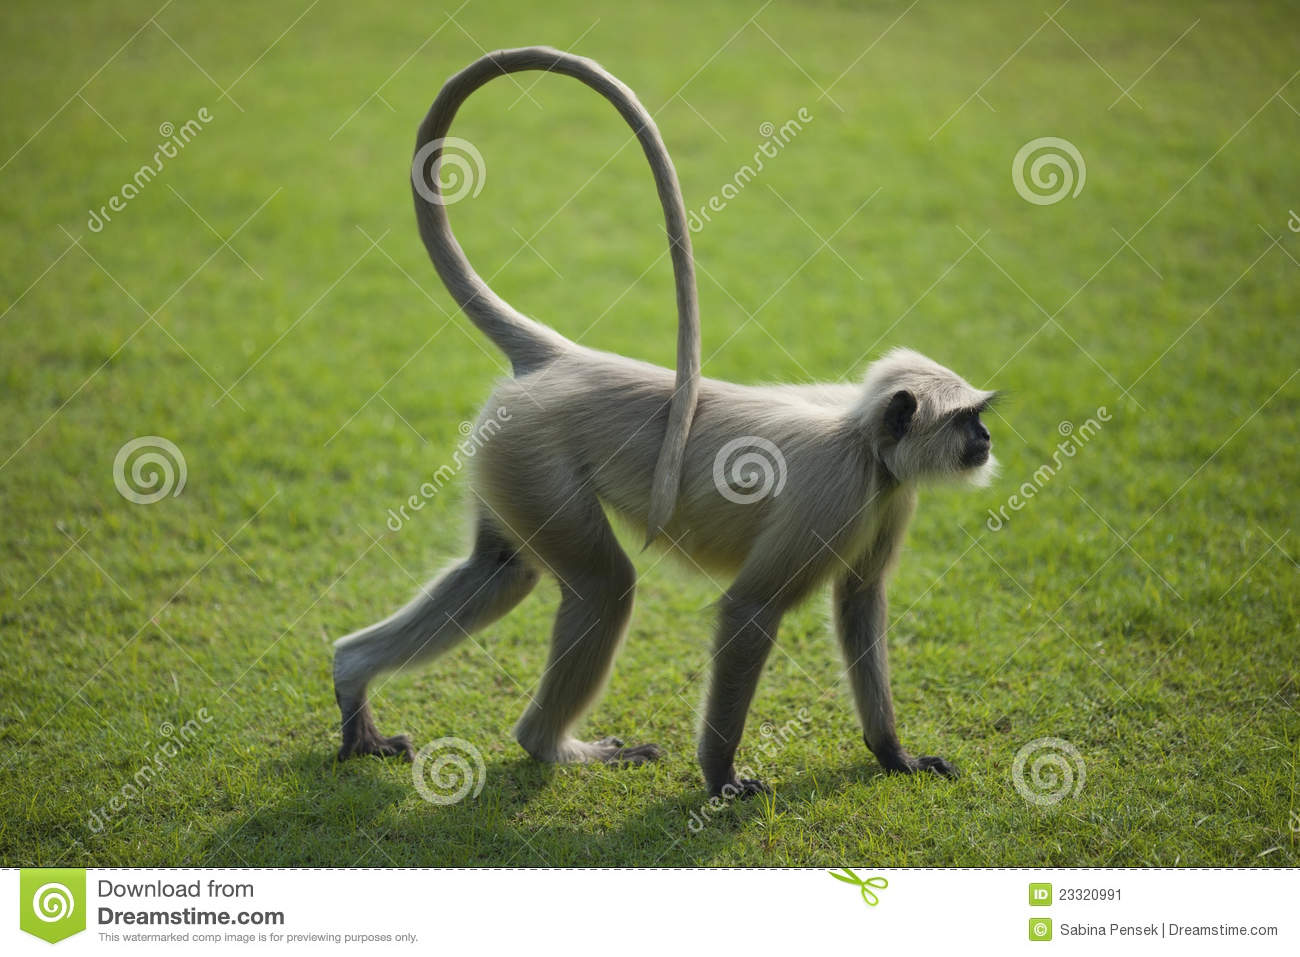 Monkey Langur Or Hanuman On The Green Grass In Ind Stock Image.